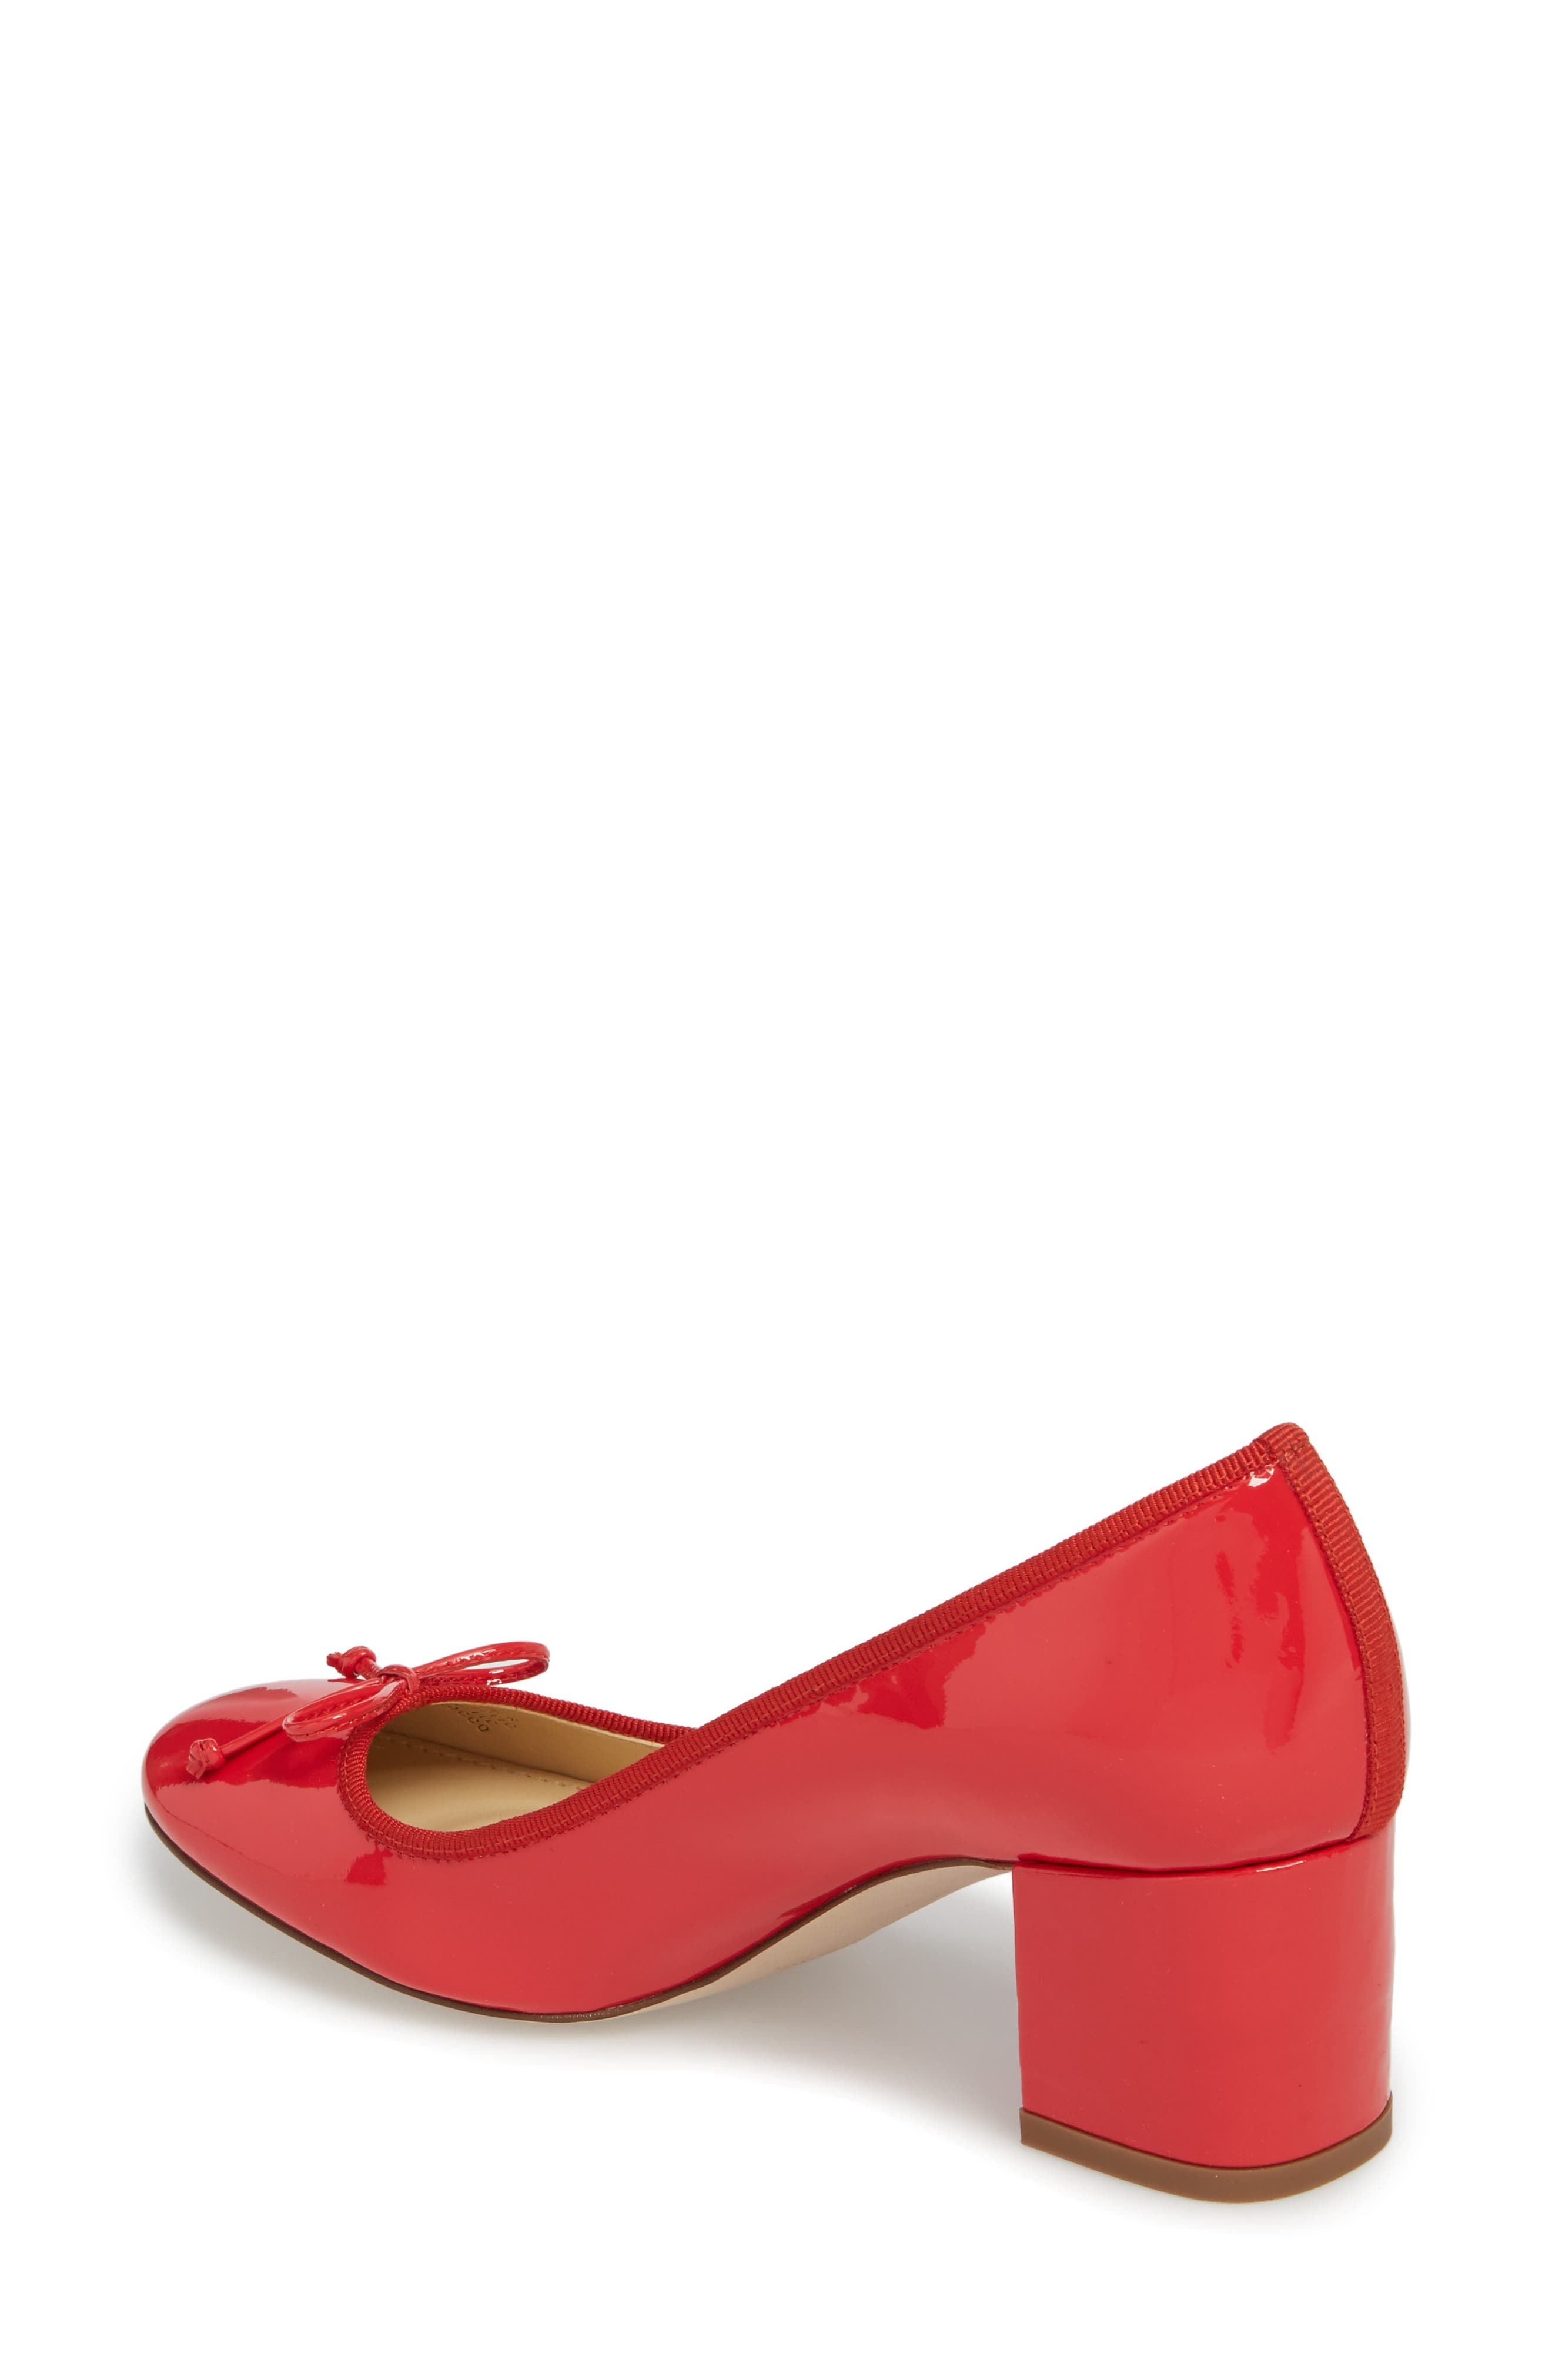 Leonard Pump,                             Alternate thumbnail 2, color,                             Red Leather